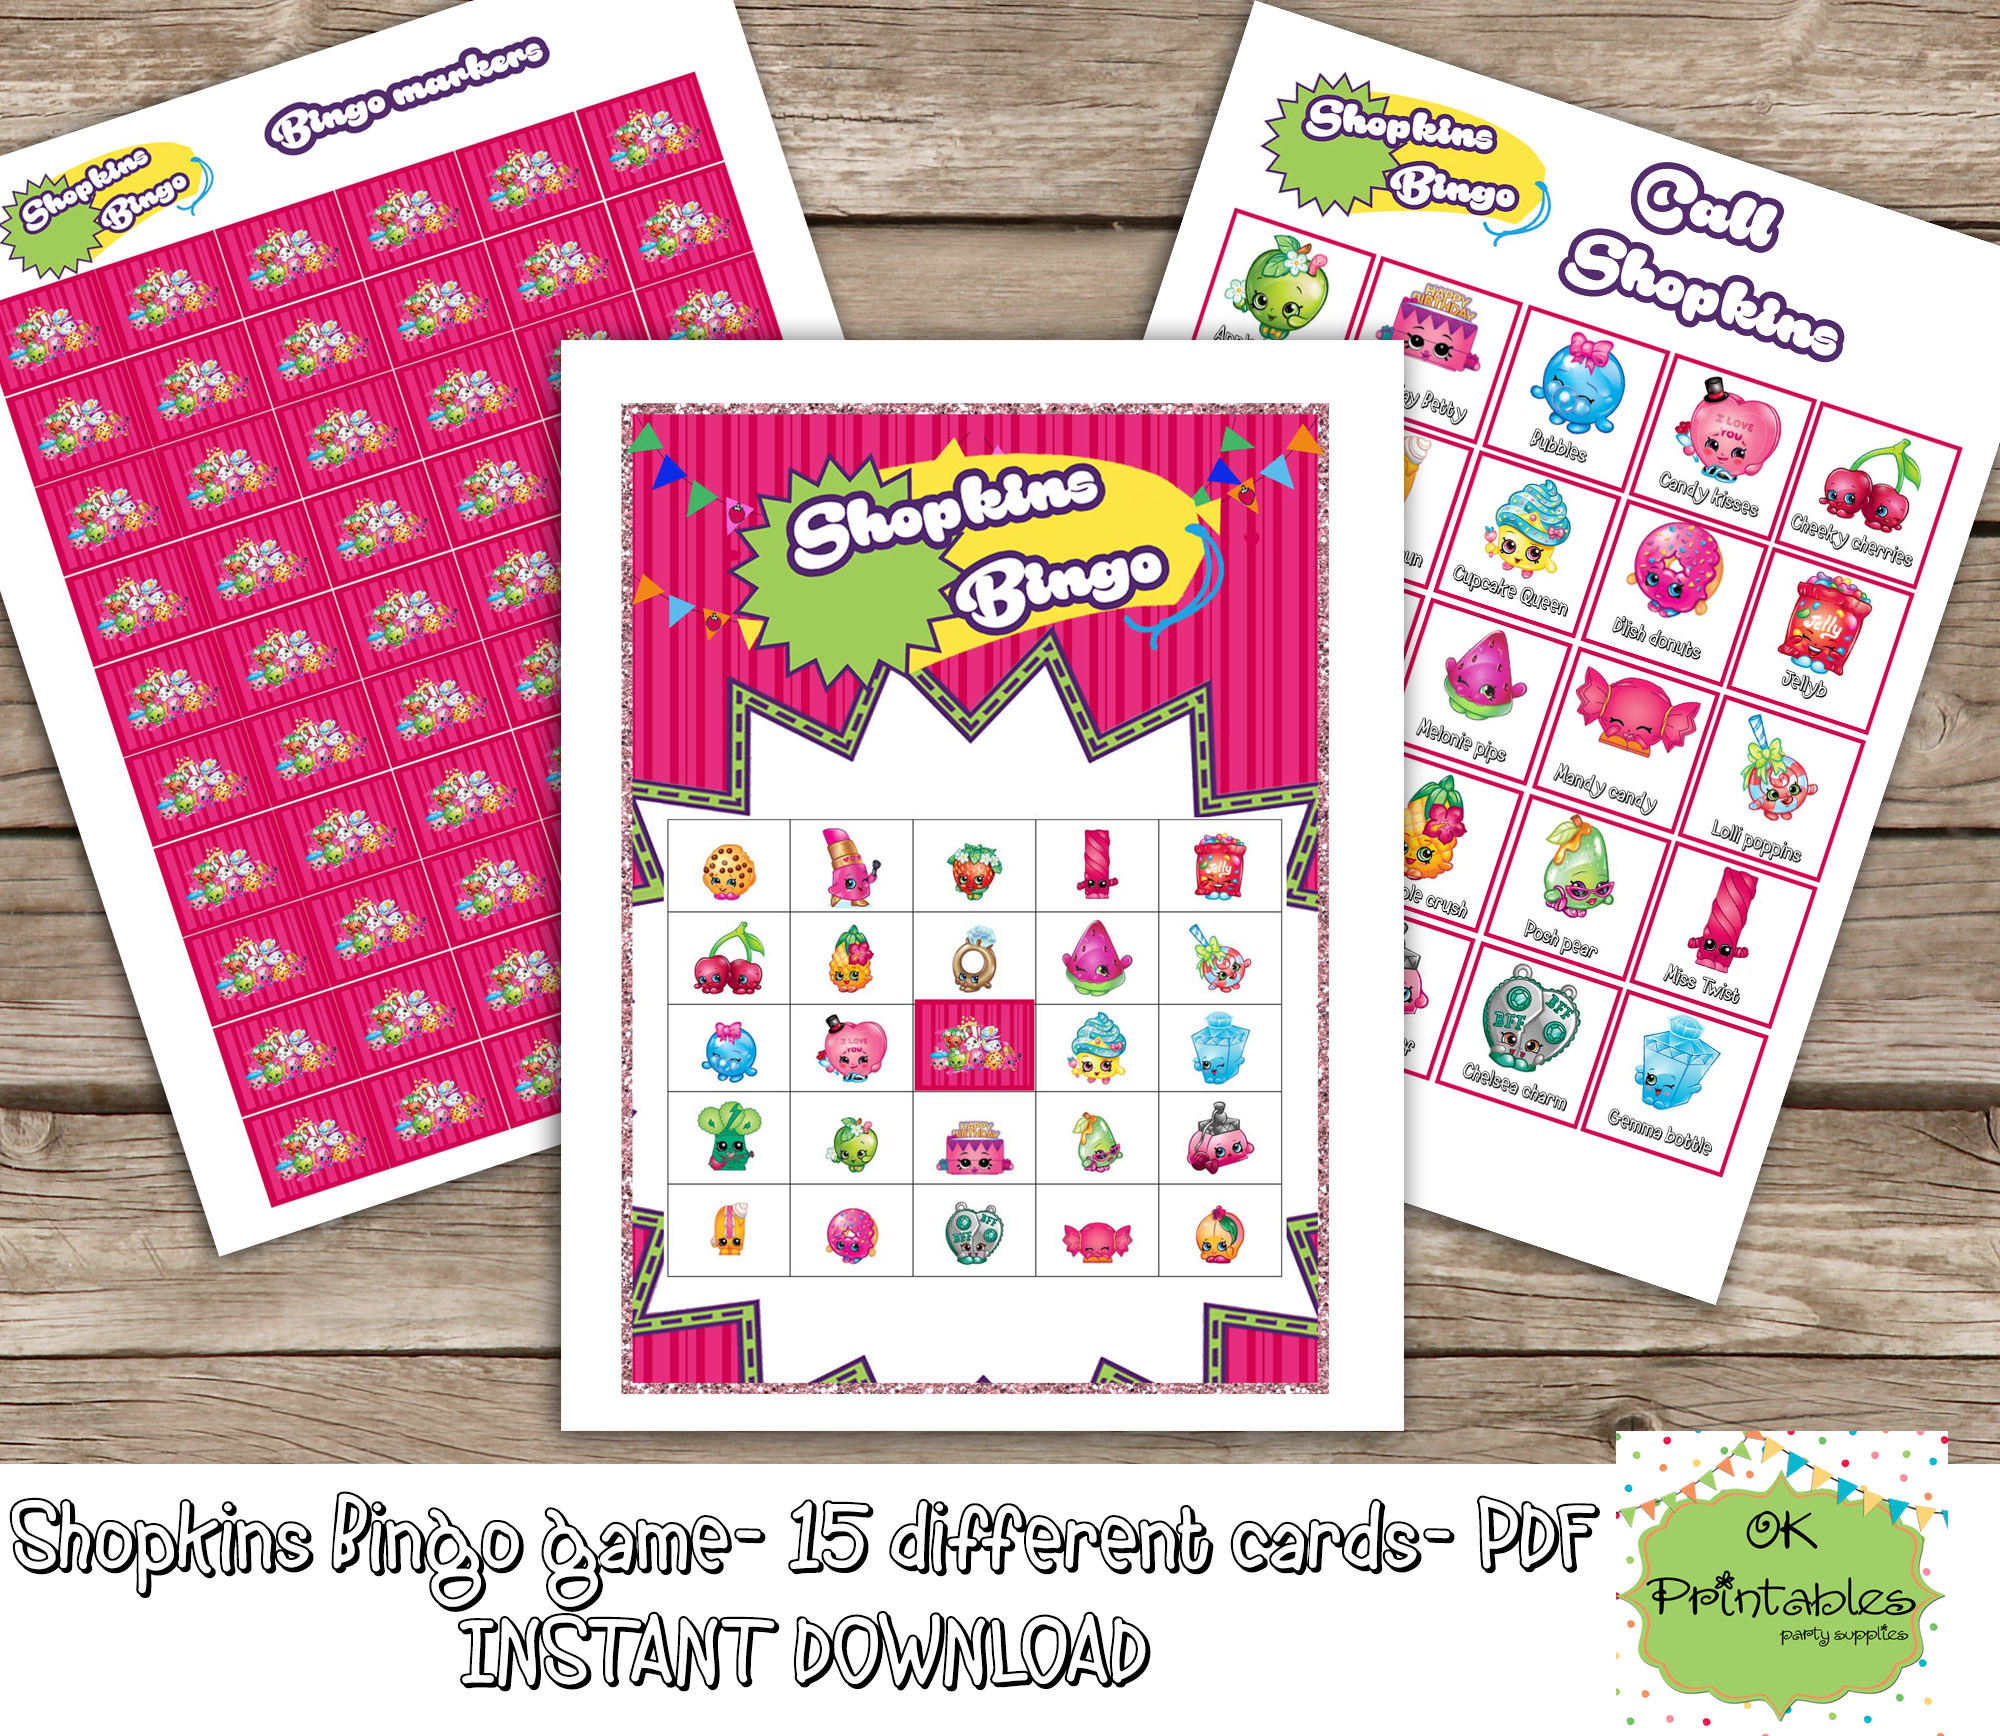 photograph regarding Shopkins Birthday Card Printable named Shopkins Bingo Video game (include things like 15 Alternate Playing cards)- Shopkins Printable Bingo -Shopkins Birthday Occasion -Shopkins Prefer - Shopkins Activity Occasion